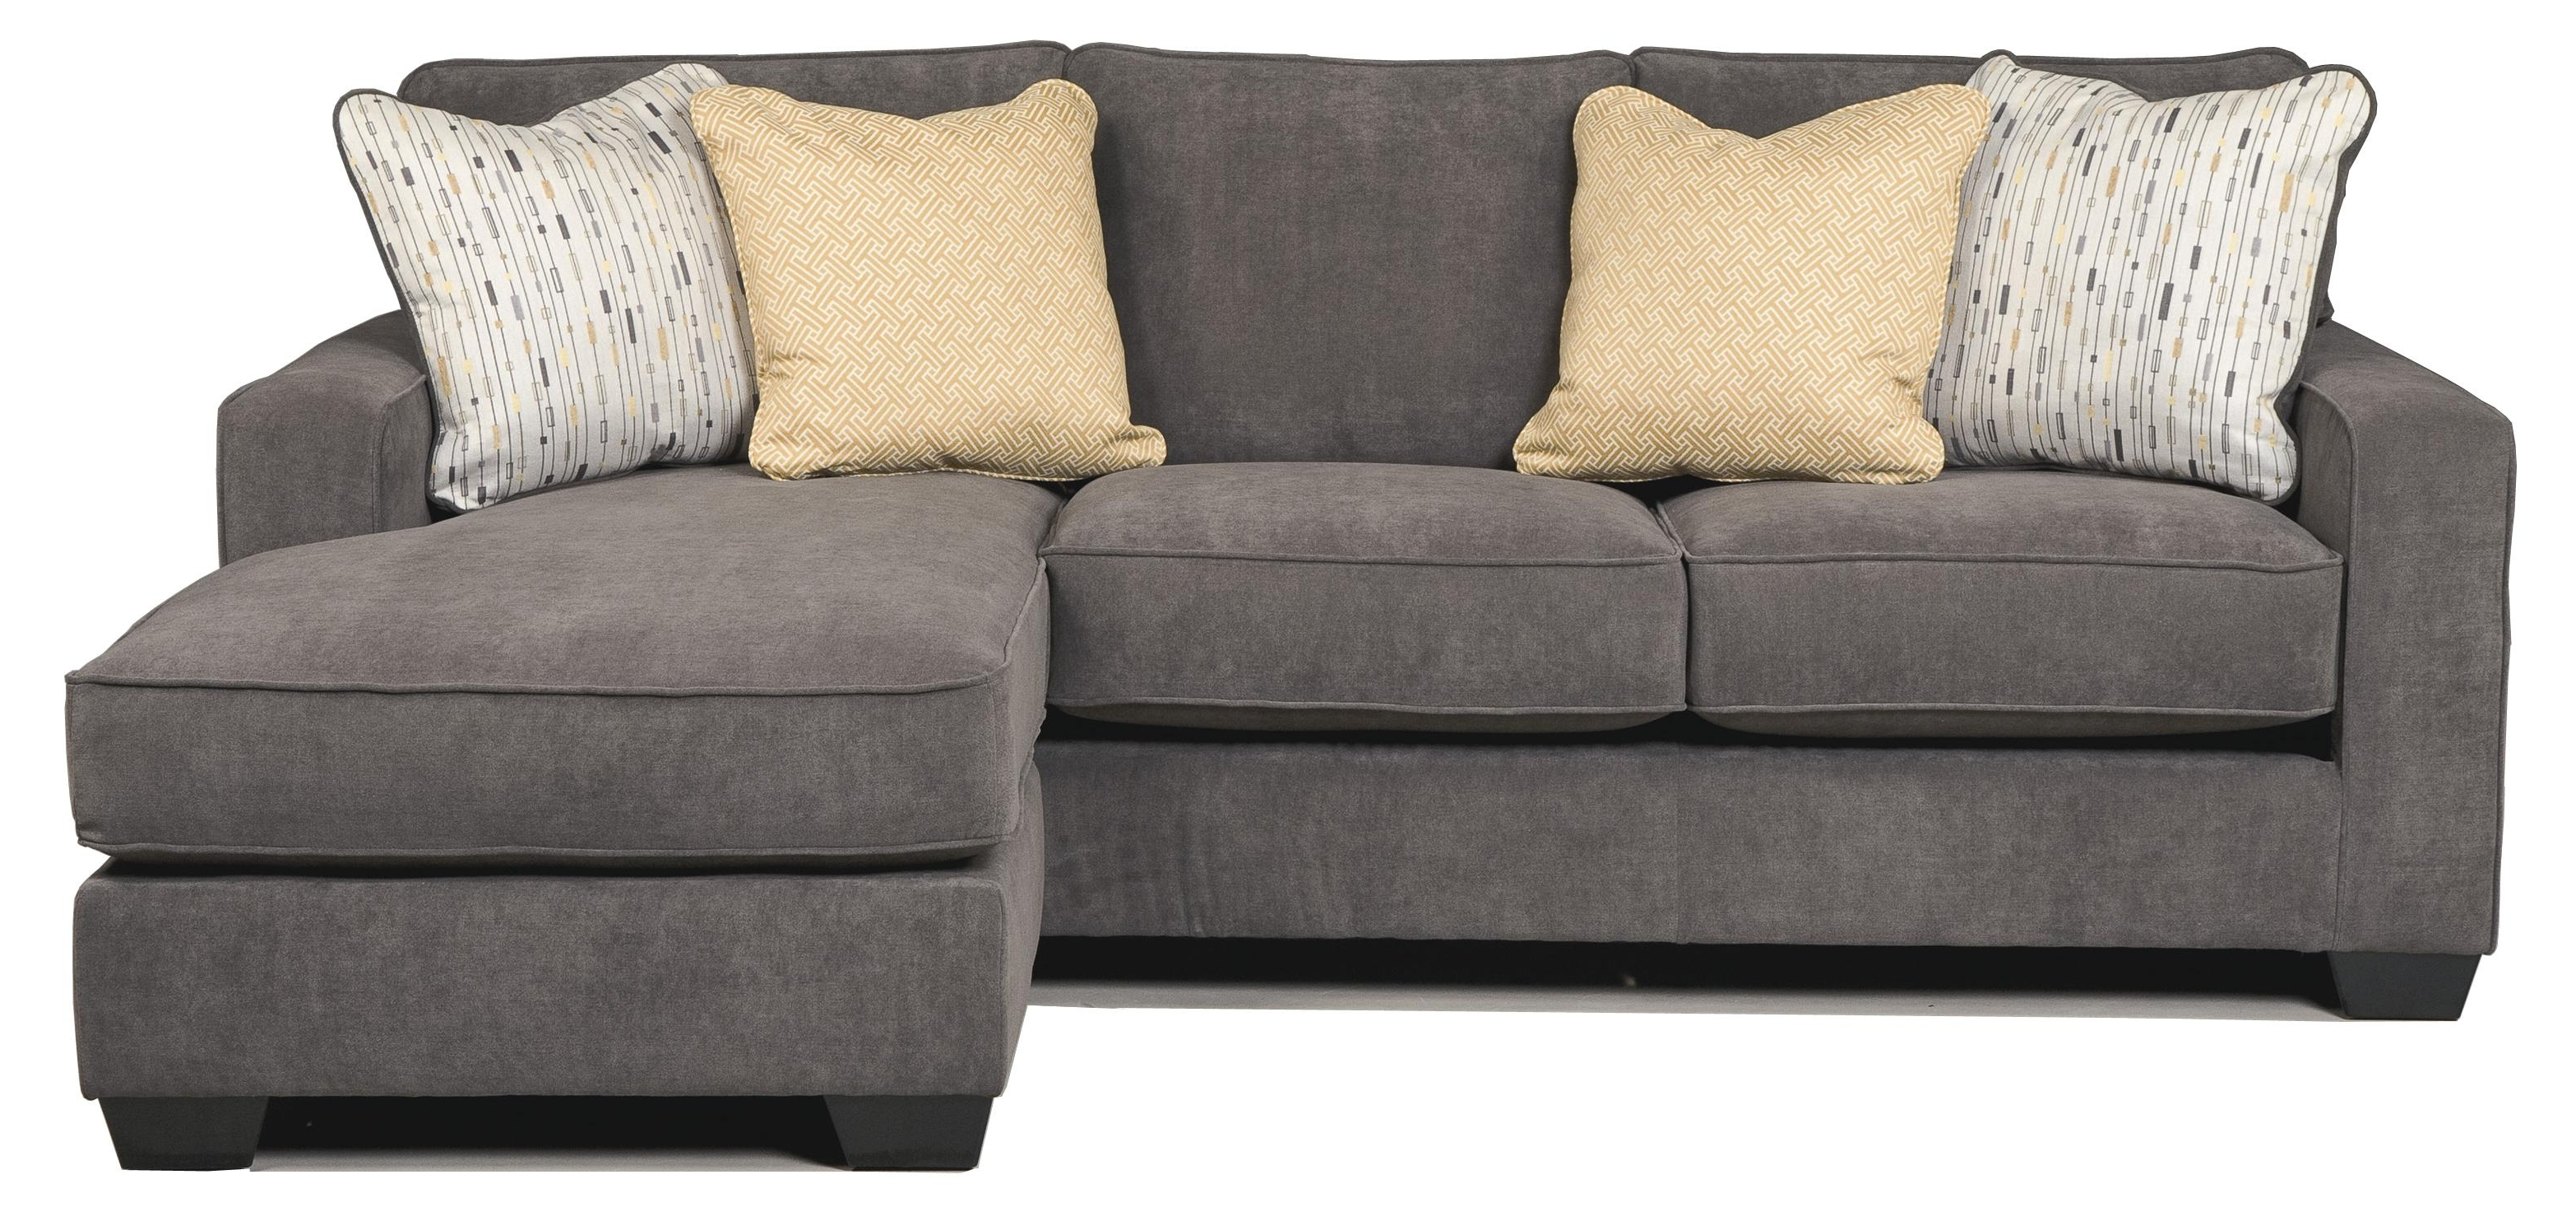 Ashley Signature Design Hodan – Marble 7970018 Contemporary Sofa Inside Widely Used Hodan Sofas With Chaise (View 3 of 15)